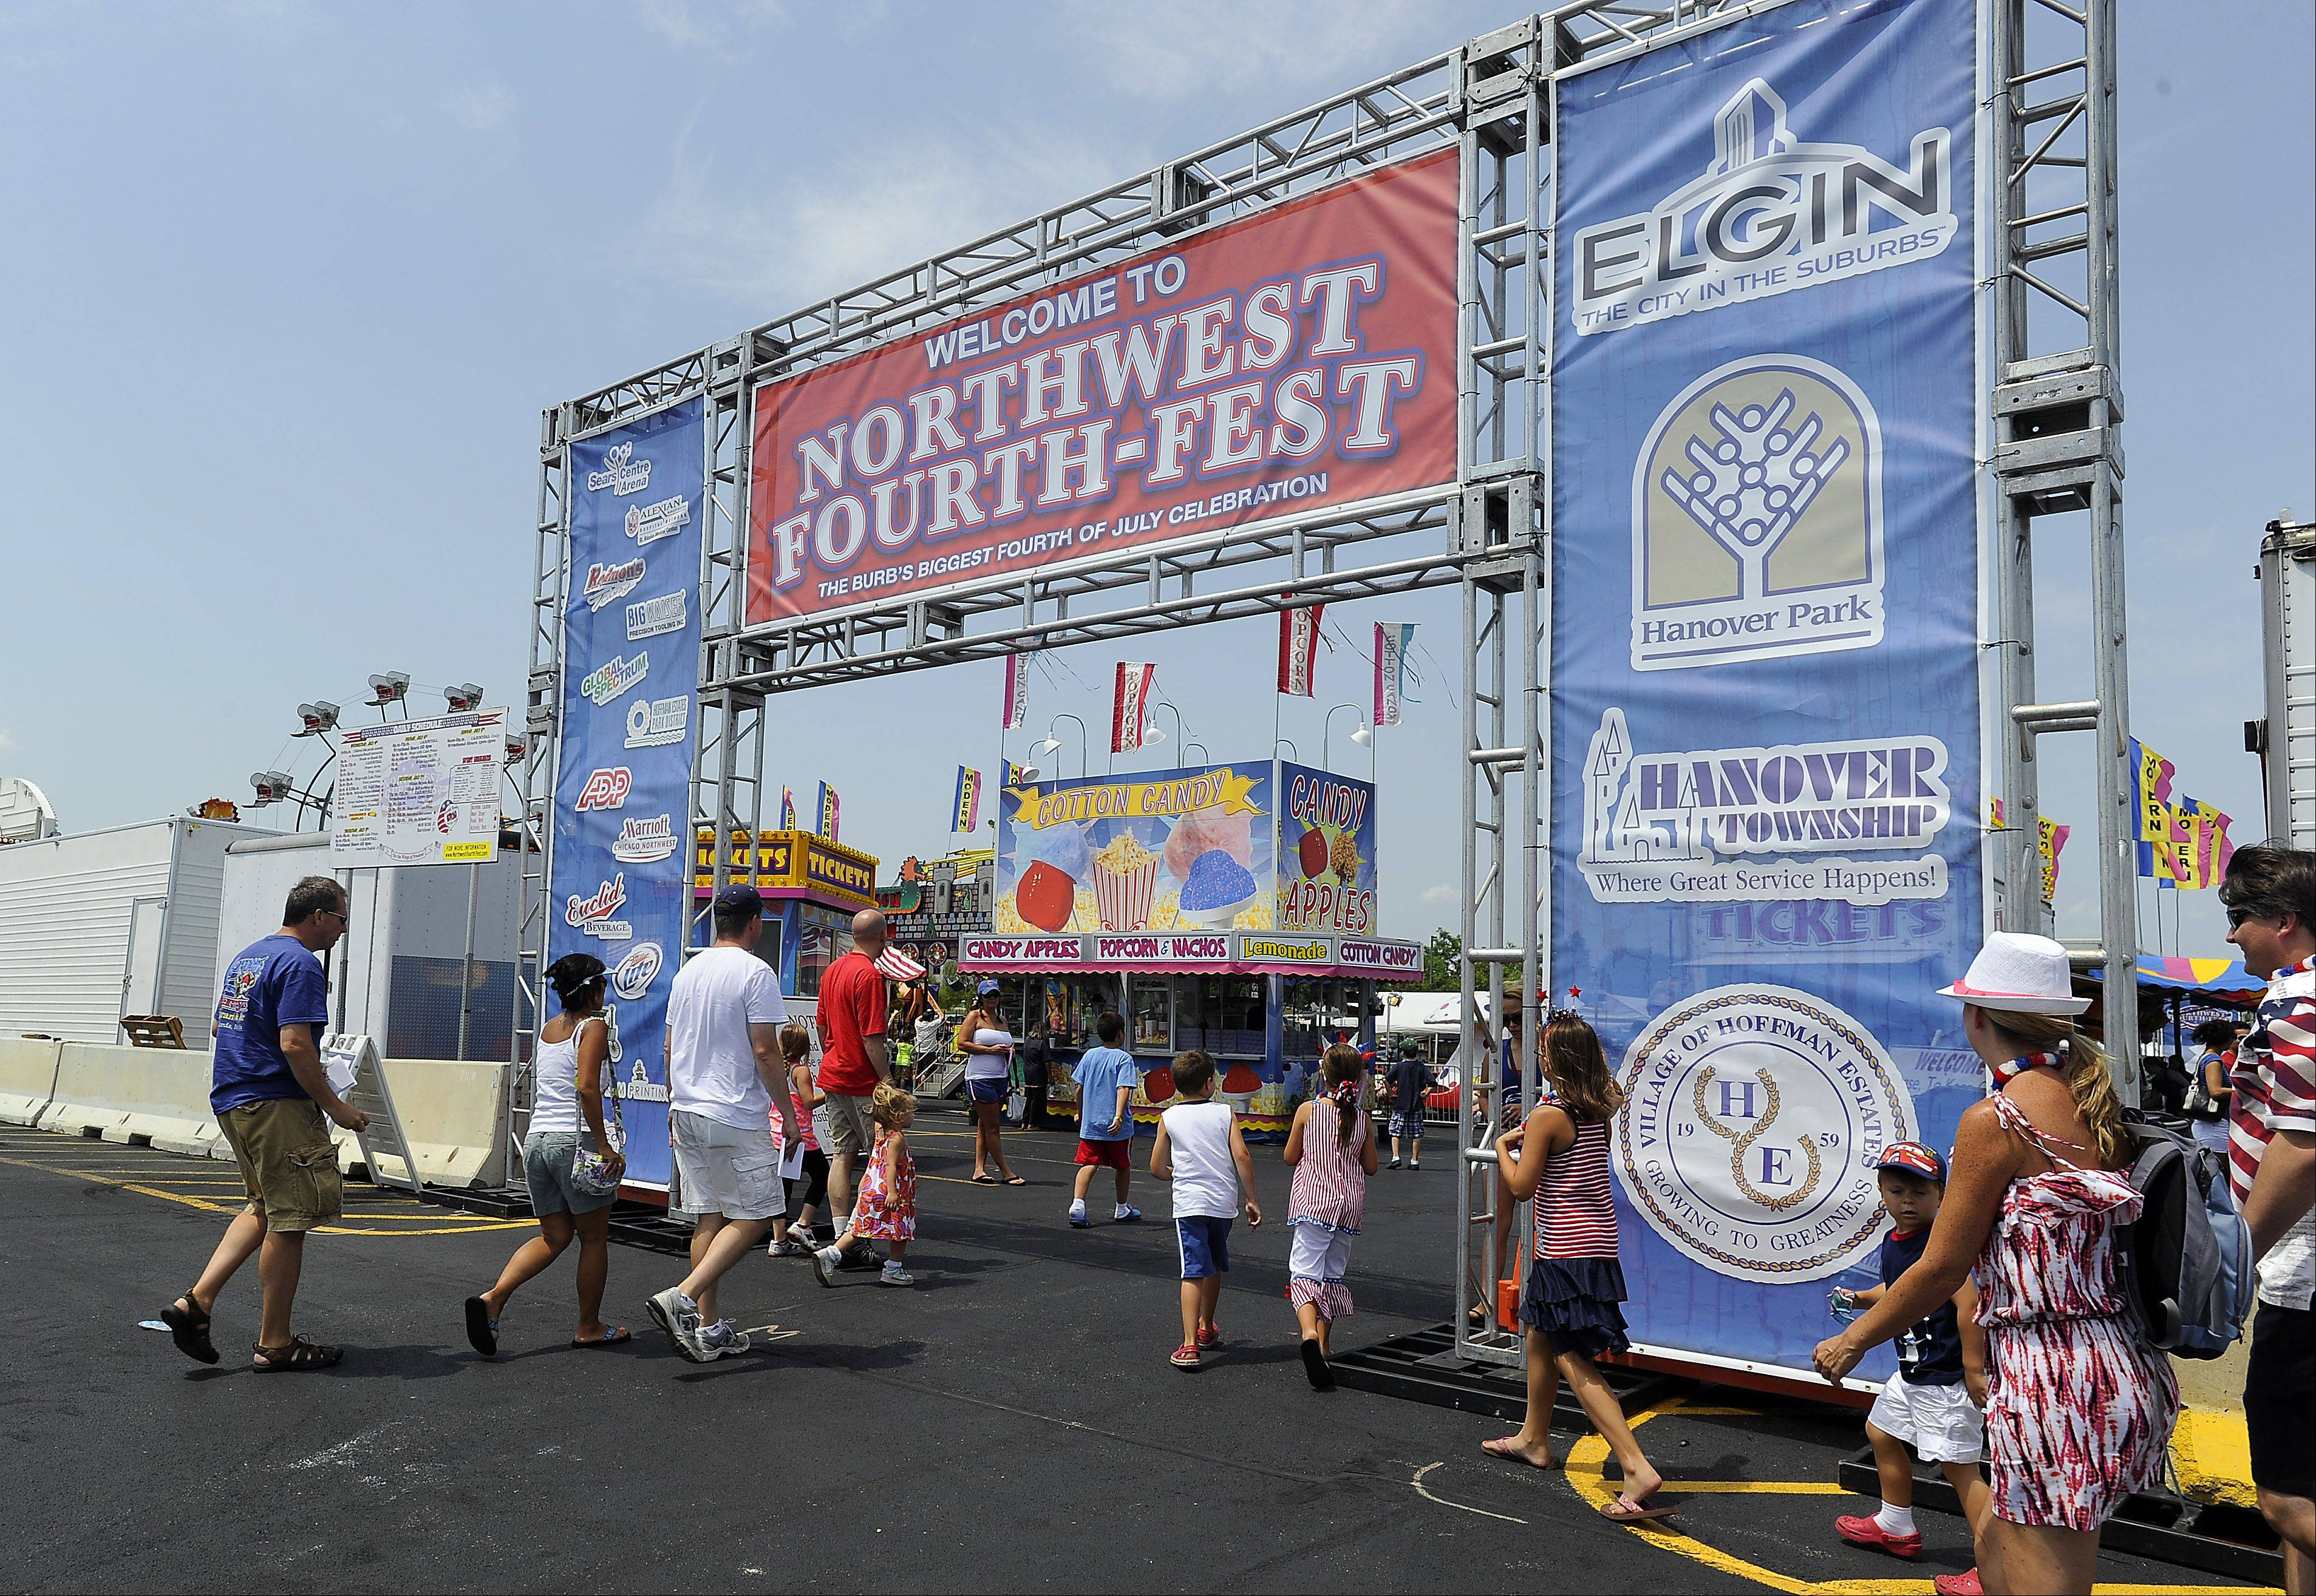 The Hoffman Estates village board approved a contract Monday for a $39,000 fireworks show at this year's Northwest Fourth Fest.